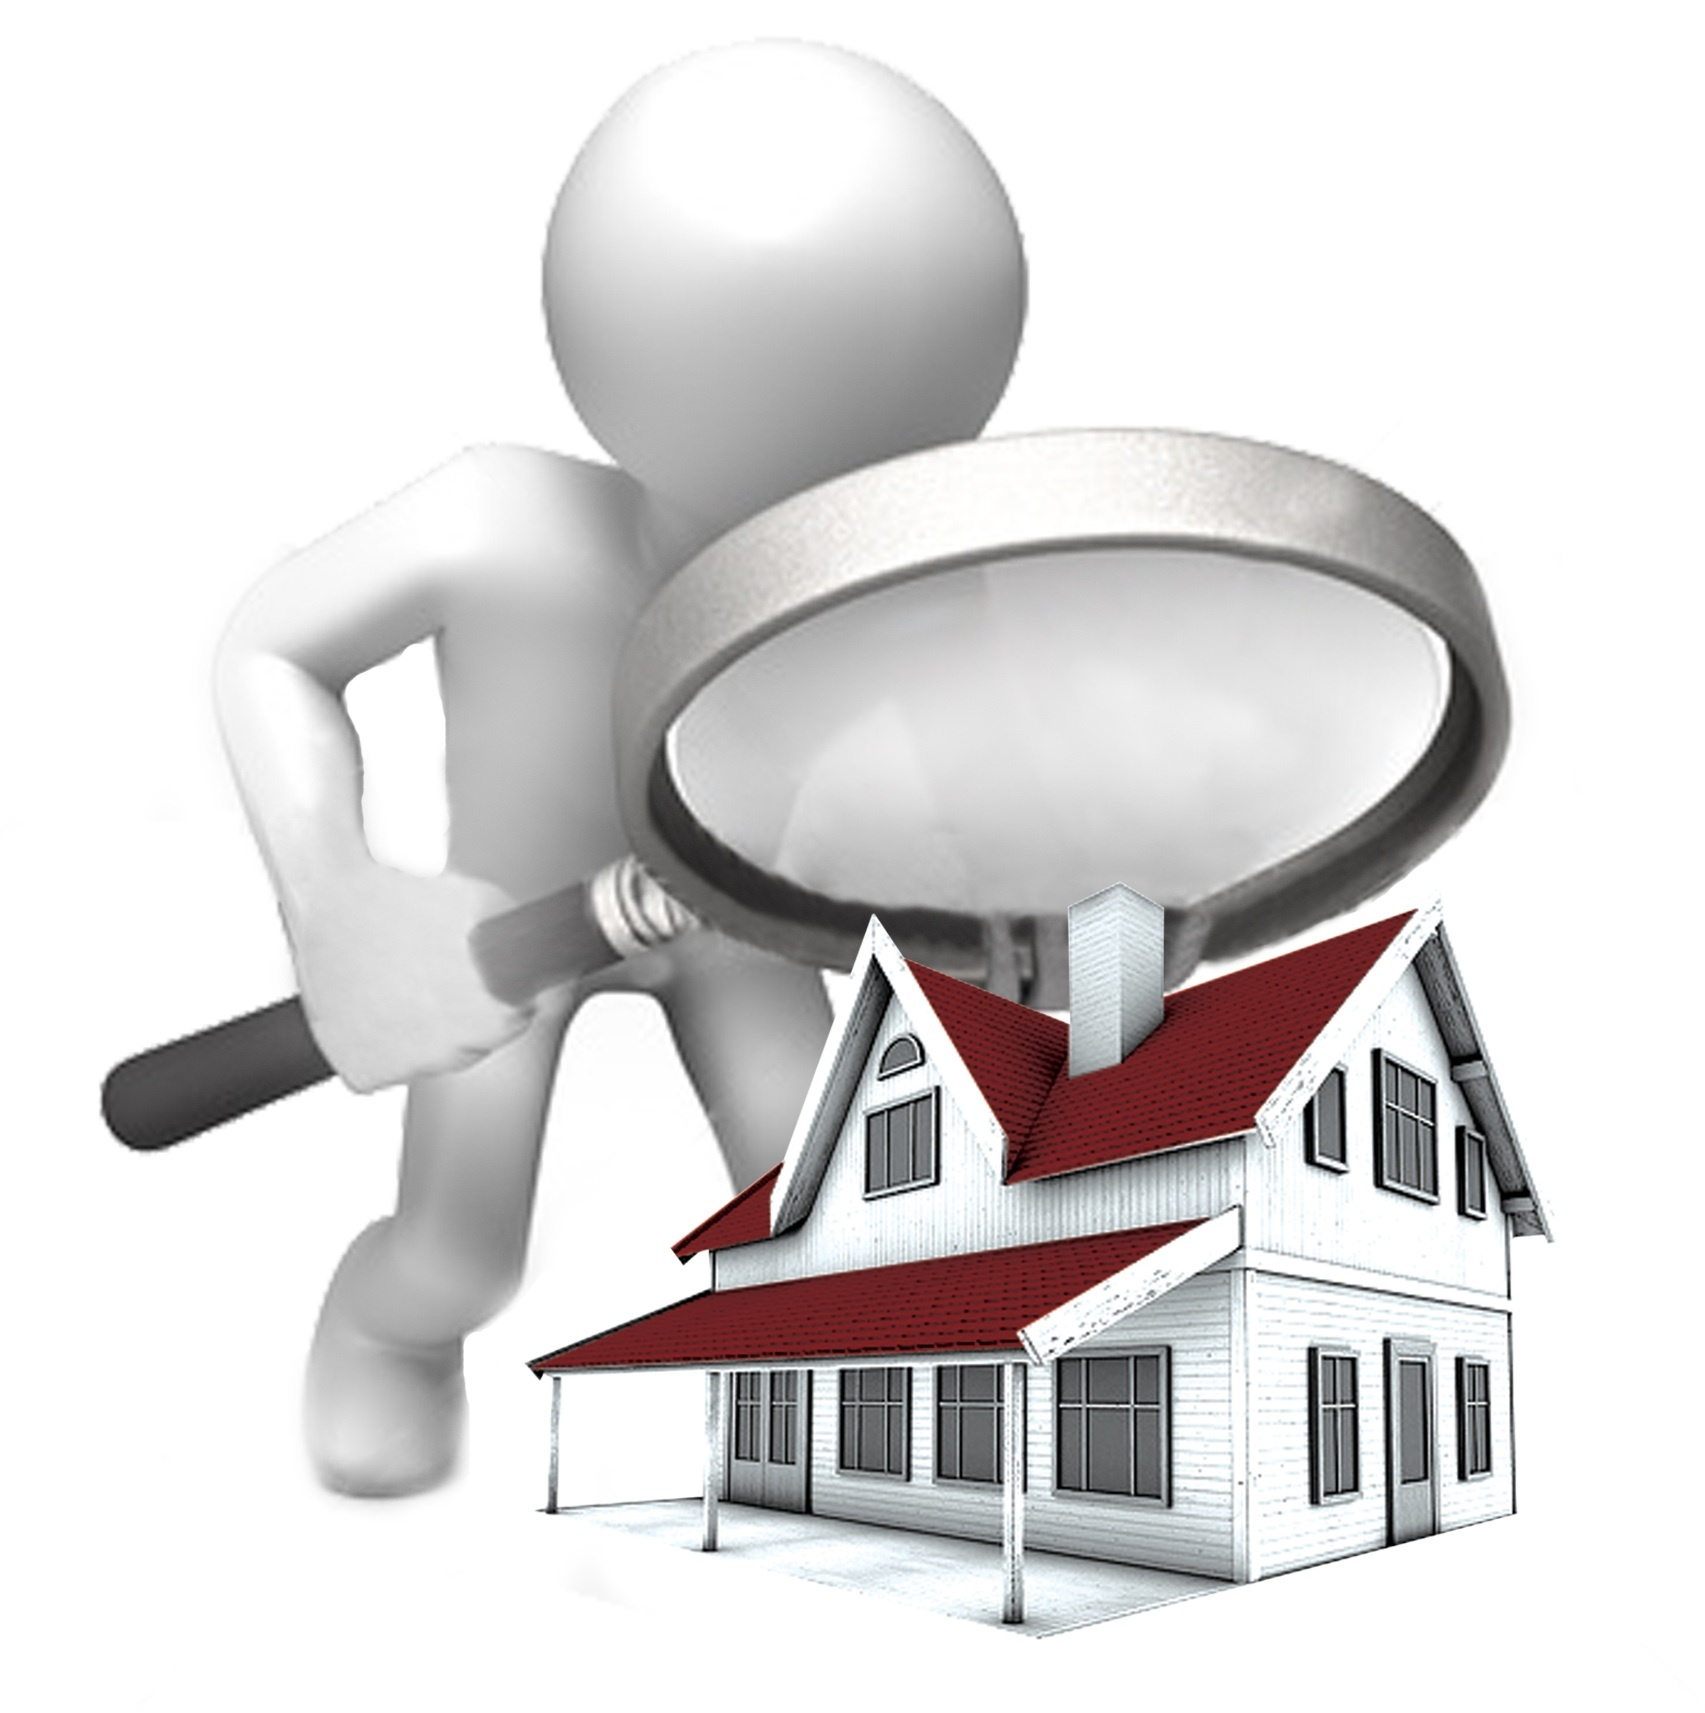 Home inspector clipart clip art royalty free stock Inspections Now Kingwood Home Inspection Services Clipart · F - 2463 ... clip art royalty free stock